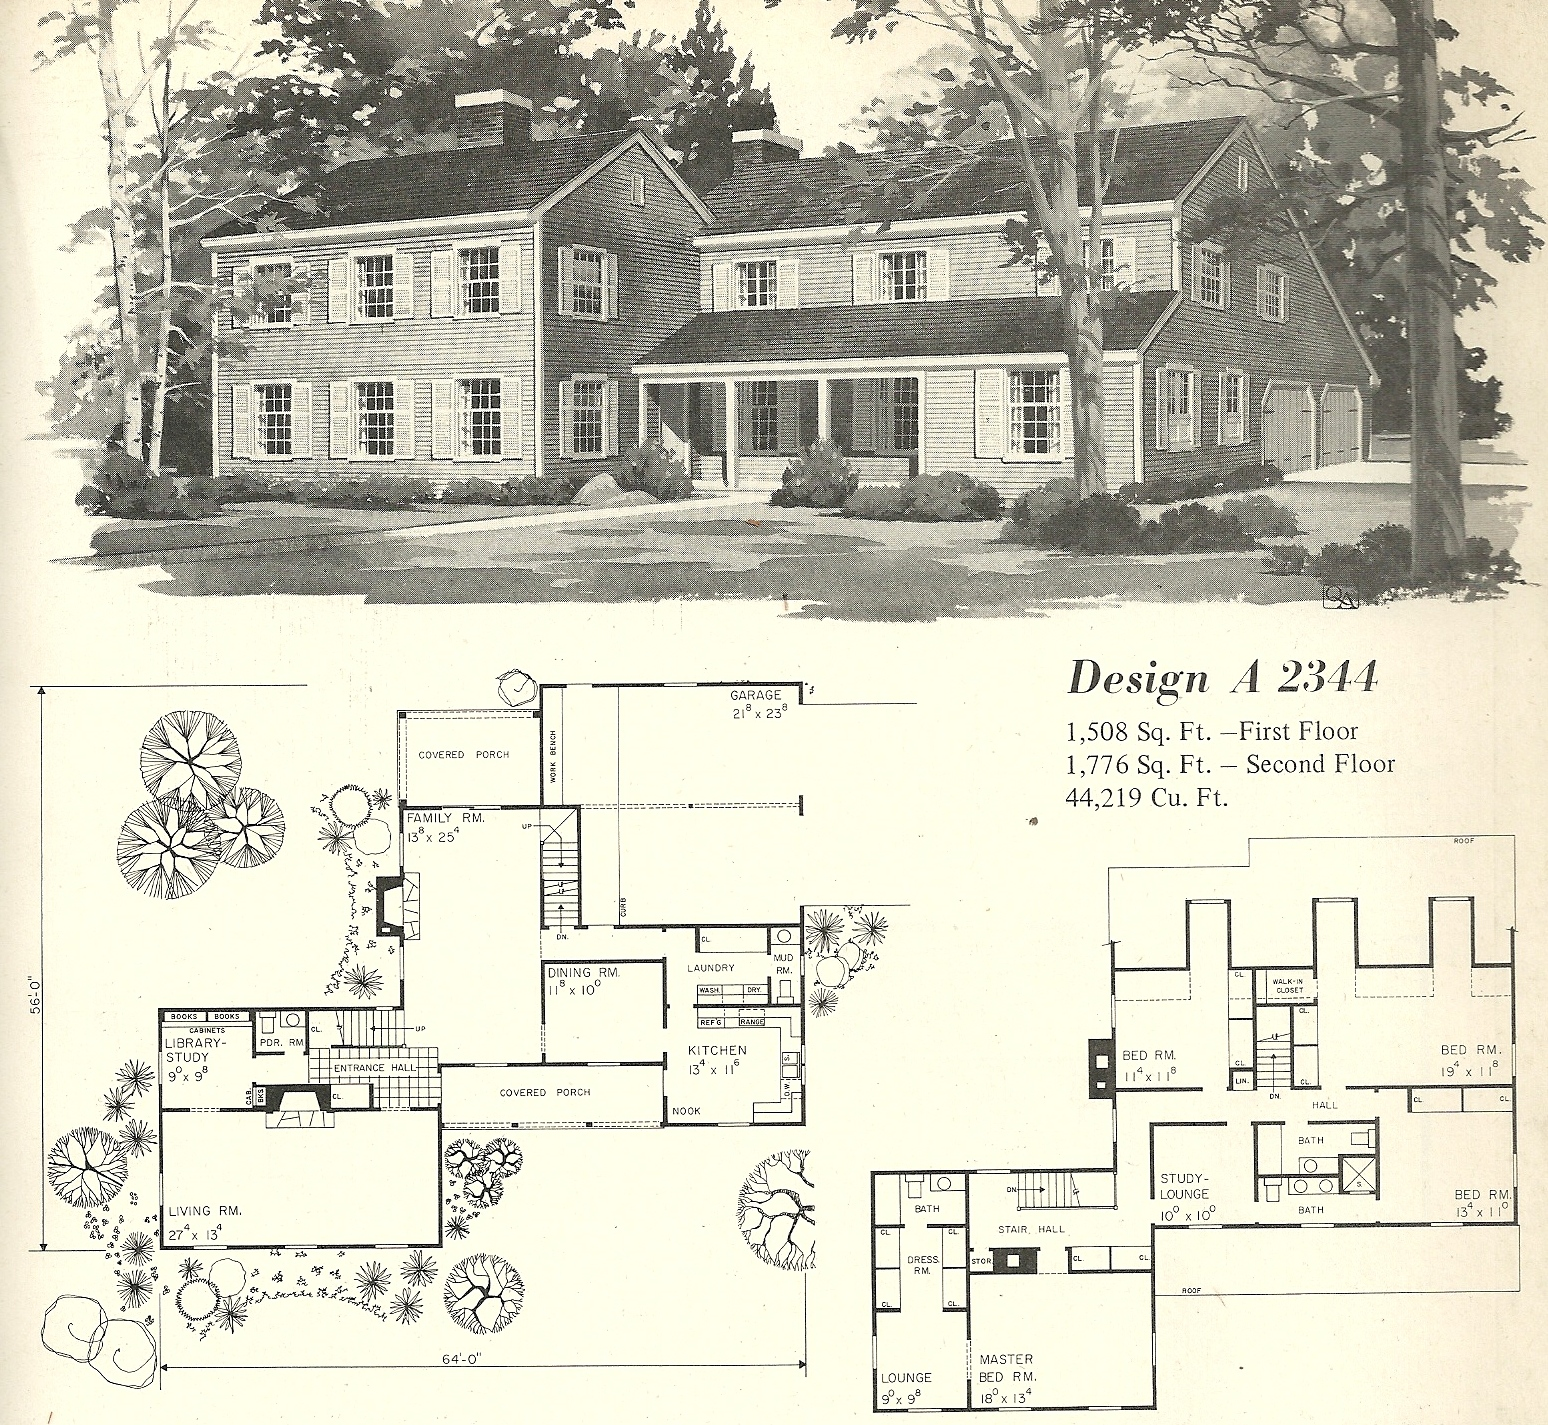 Vintage house plans farmhouse 5 antique alter ego - Retro home design ...